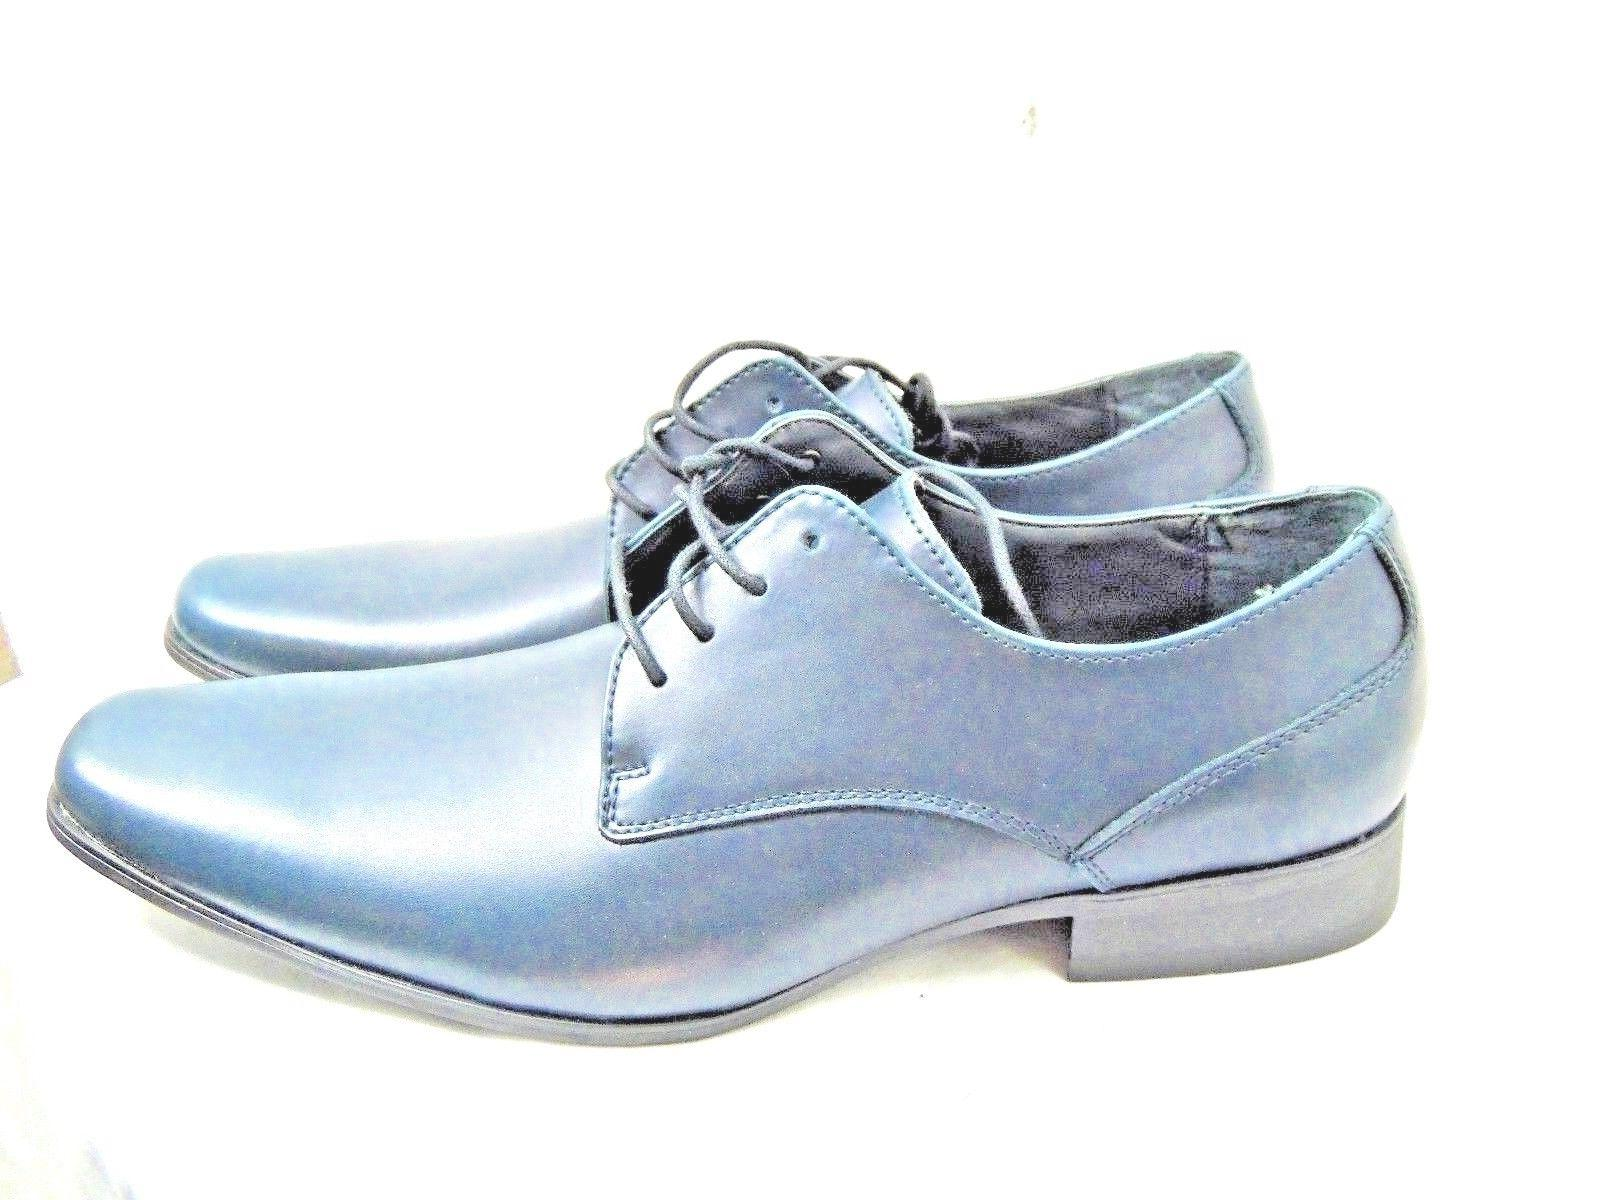 new mens dress shoes brand size 10